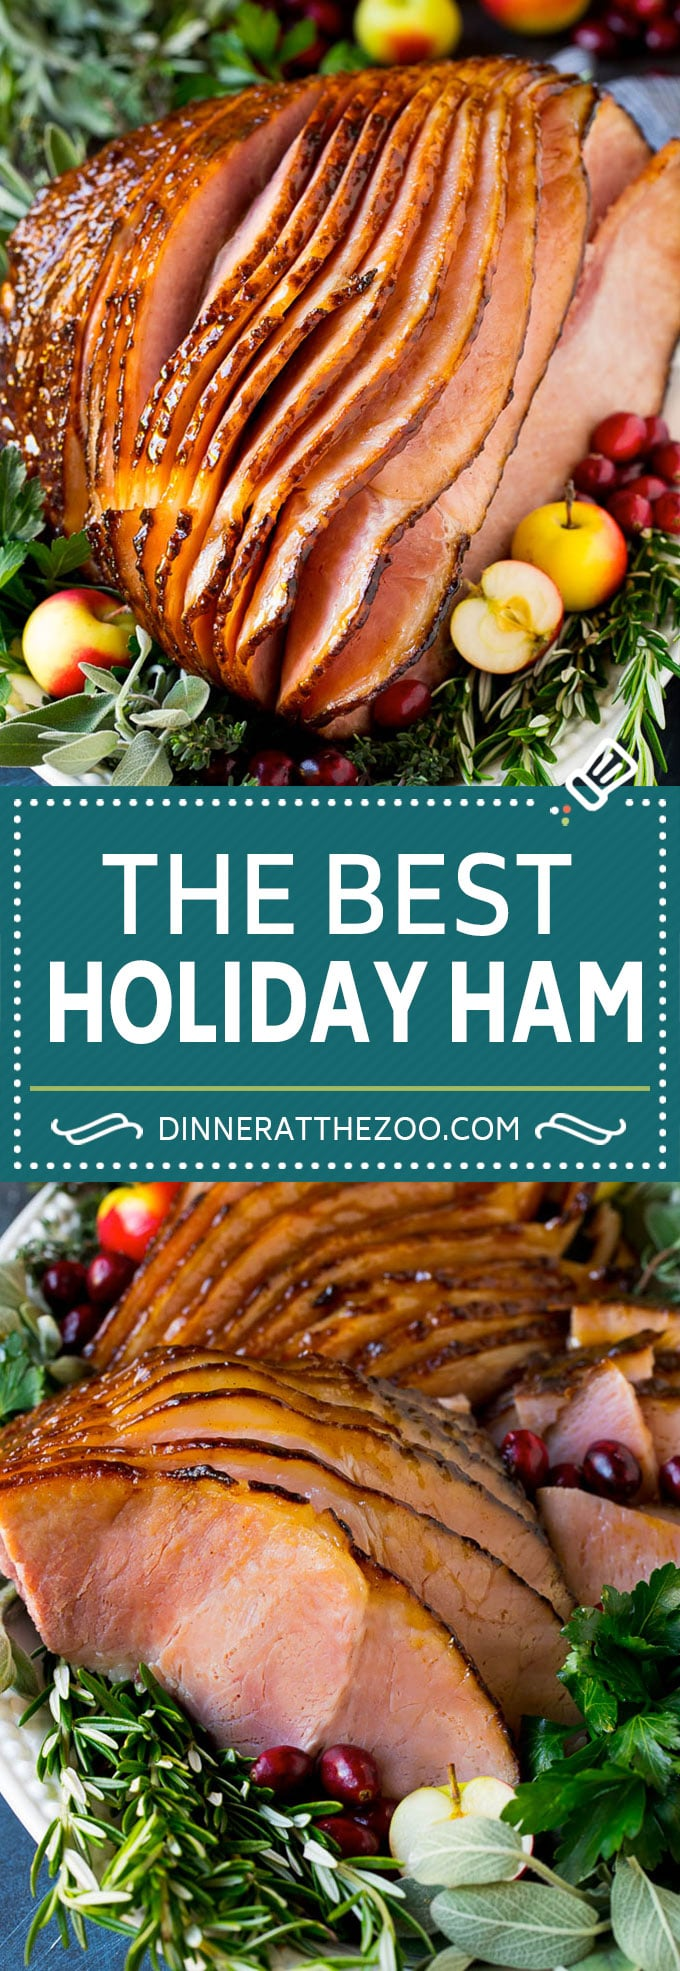 This is a complete guide on how to cook a ham. With detailed information on preparation methods, cooking times, ham glaze ideas and tips and tricks for success, you'll be able to turn out a perfect holiday ham year after year!